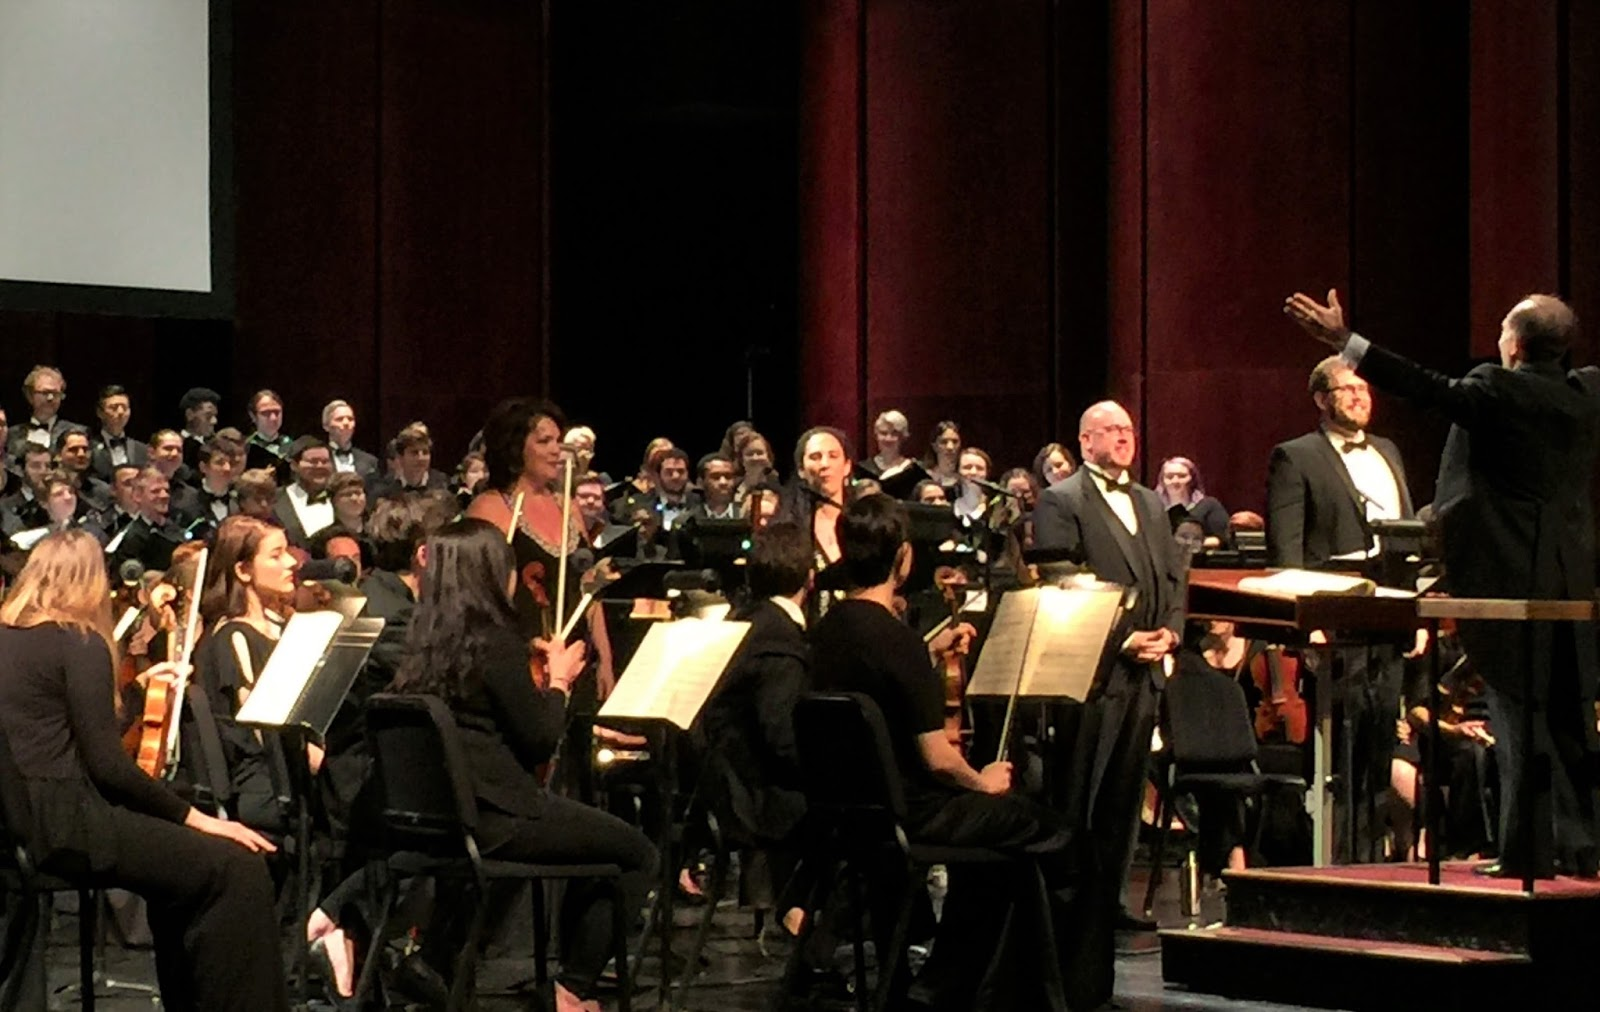 IN PERFORMANCE: (from left to right) Soprano JILL BOWEN GARDNER, mezzo-soprano STEPHANIE FOLEY DAVIS, tenor DANIEL C. STEIN, bass-baritone DAVID ANDERSON WEIGEL, and conductor DR. KEVIN M. GERALDI accepting the audience's applause for UNCG School of Music's performance of Giuseppe Verdi's MESSA DA REQUIEM, 24 February 2017 [Photo by the author]